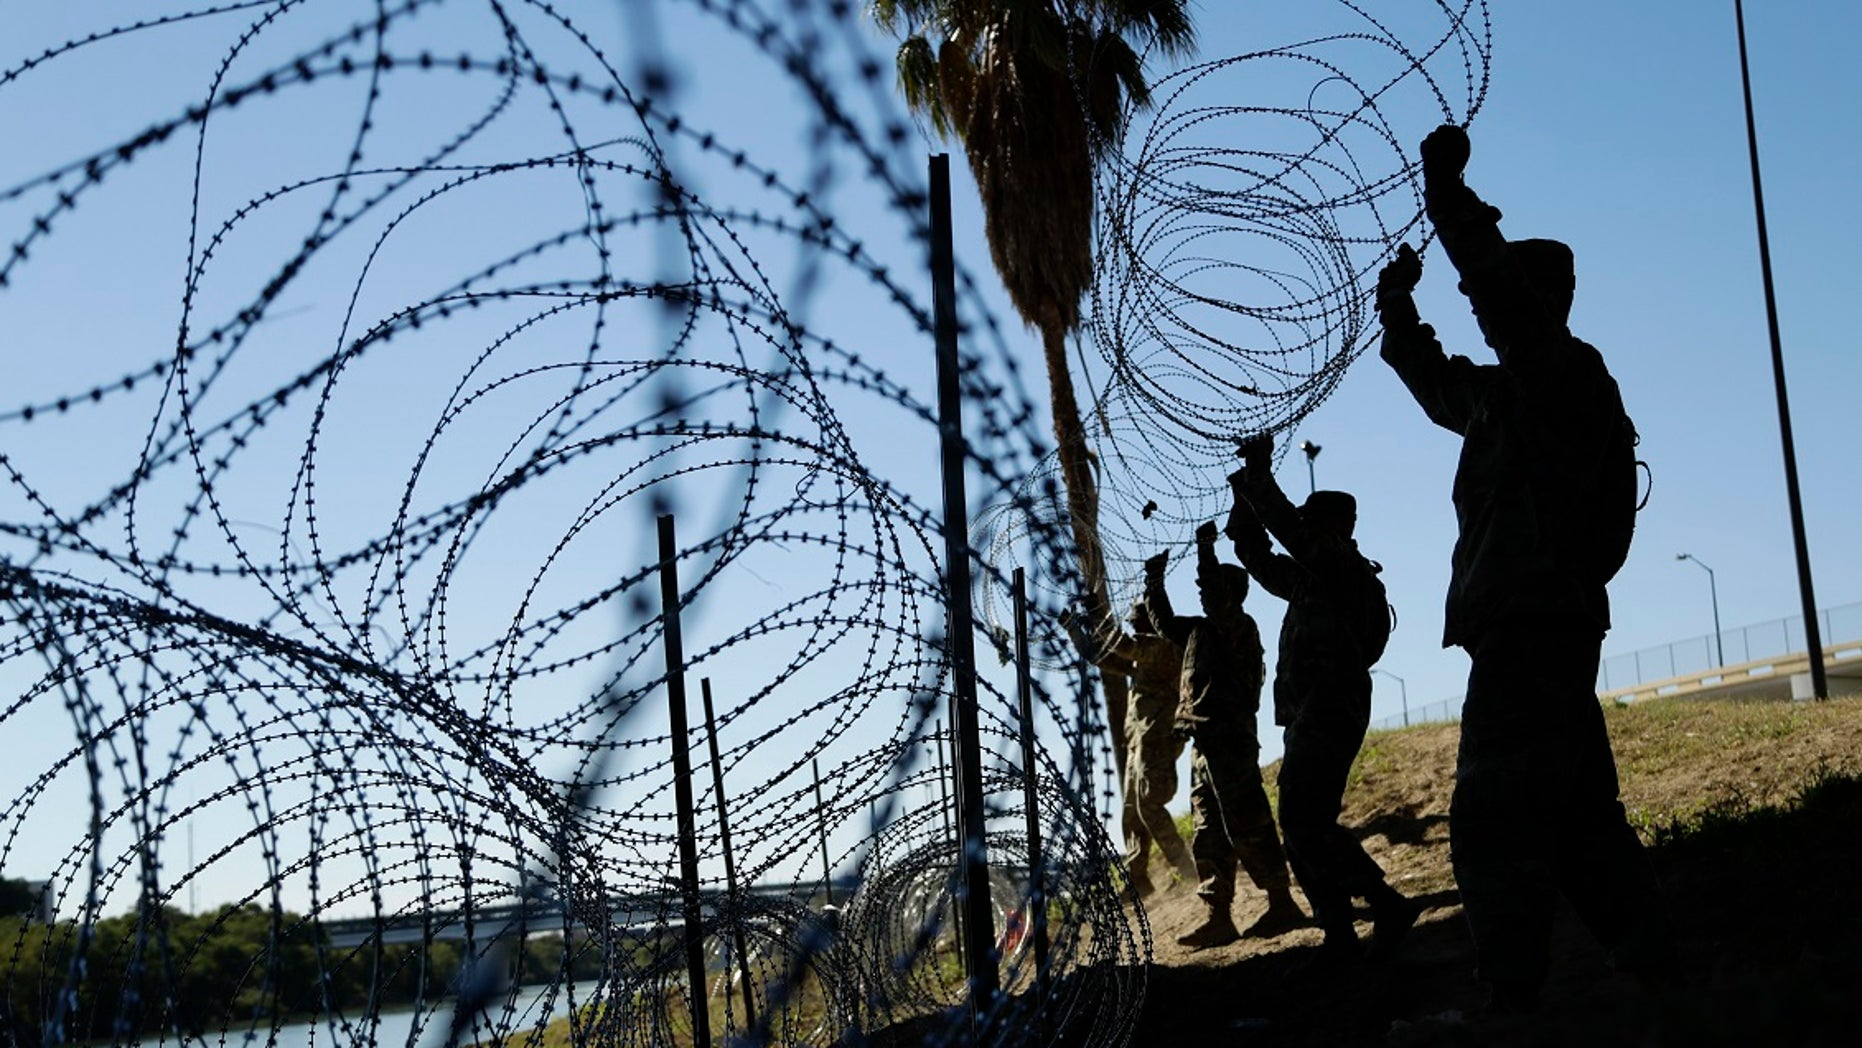 Members of the U.S. military install multiple tiers of concertina wire along the banks of the Rio Grande near the Juarez-Lincoln Bridge at the U.S.-Mexico border in Laredo, Texas, Nov. 16, 2018. (Associated Press)